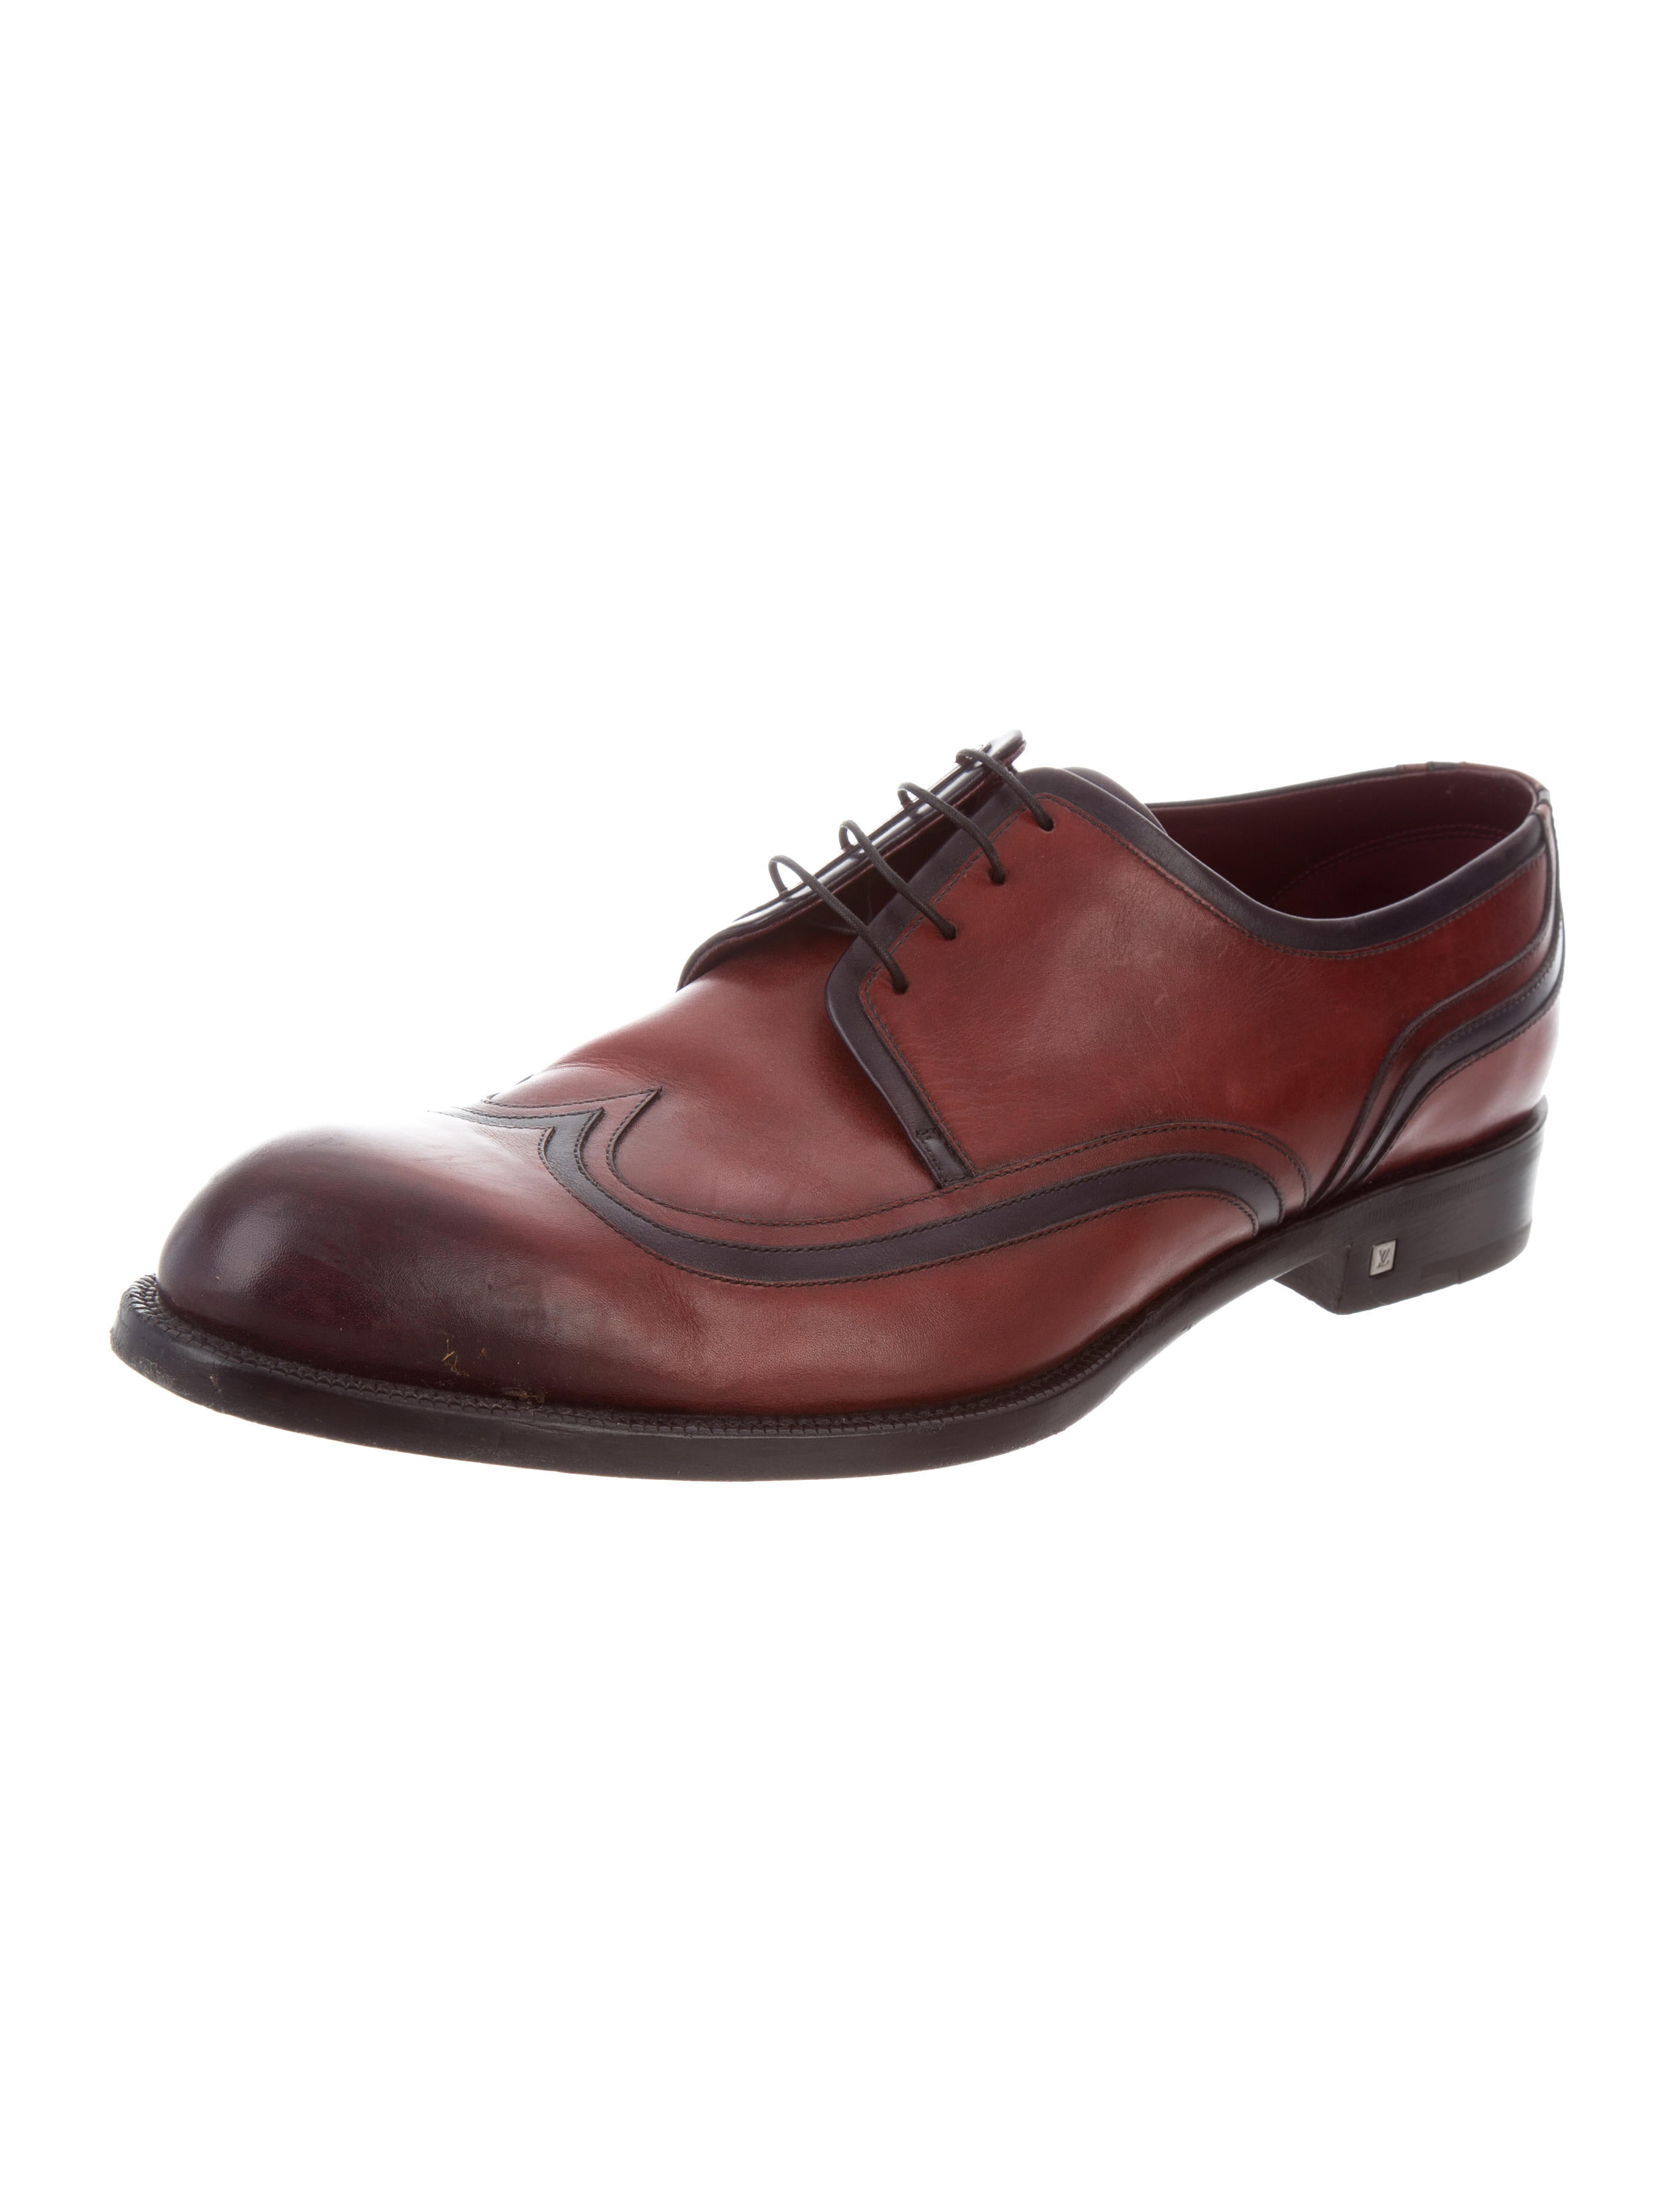 louis vuitton leather wingtip derby shoes shoes